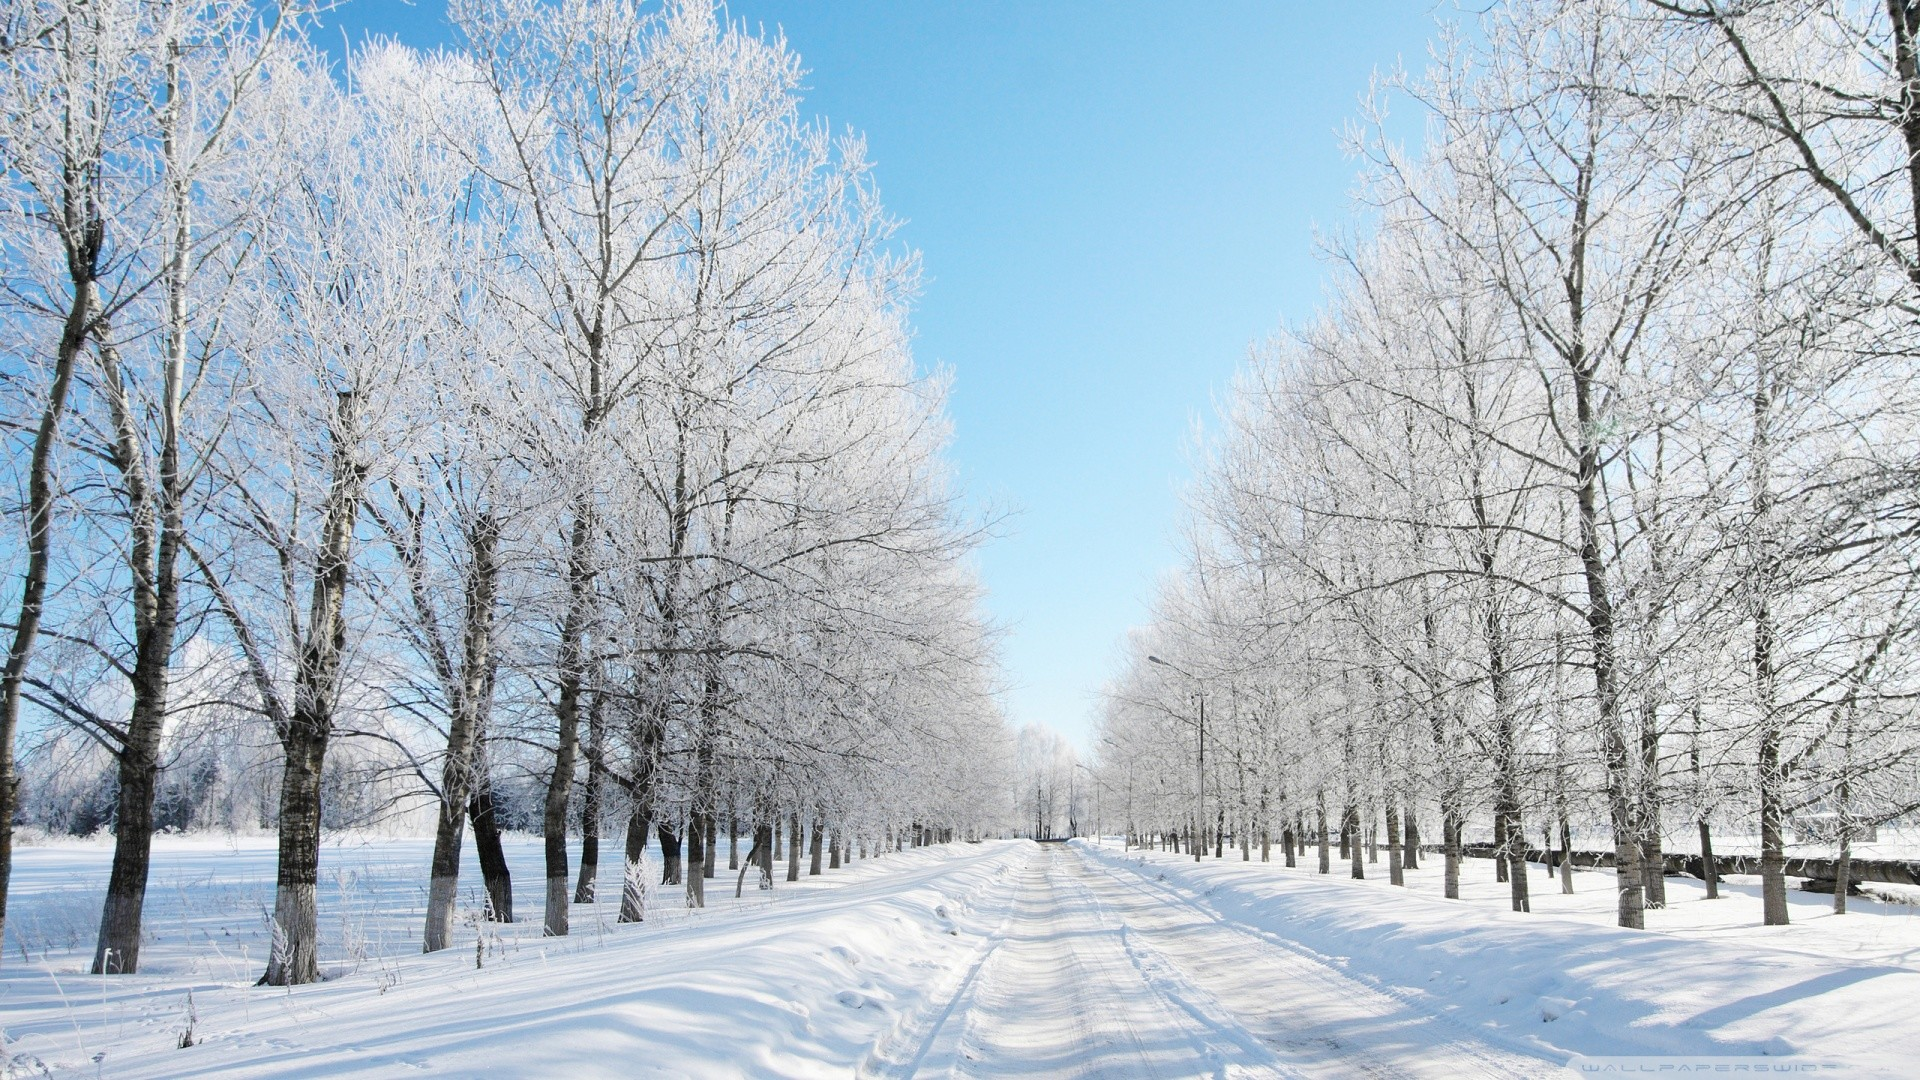 Live Snow Falling Wallpaper 54+ images